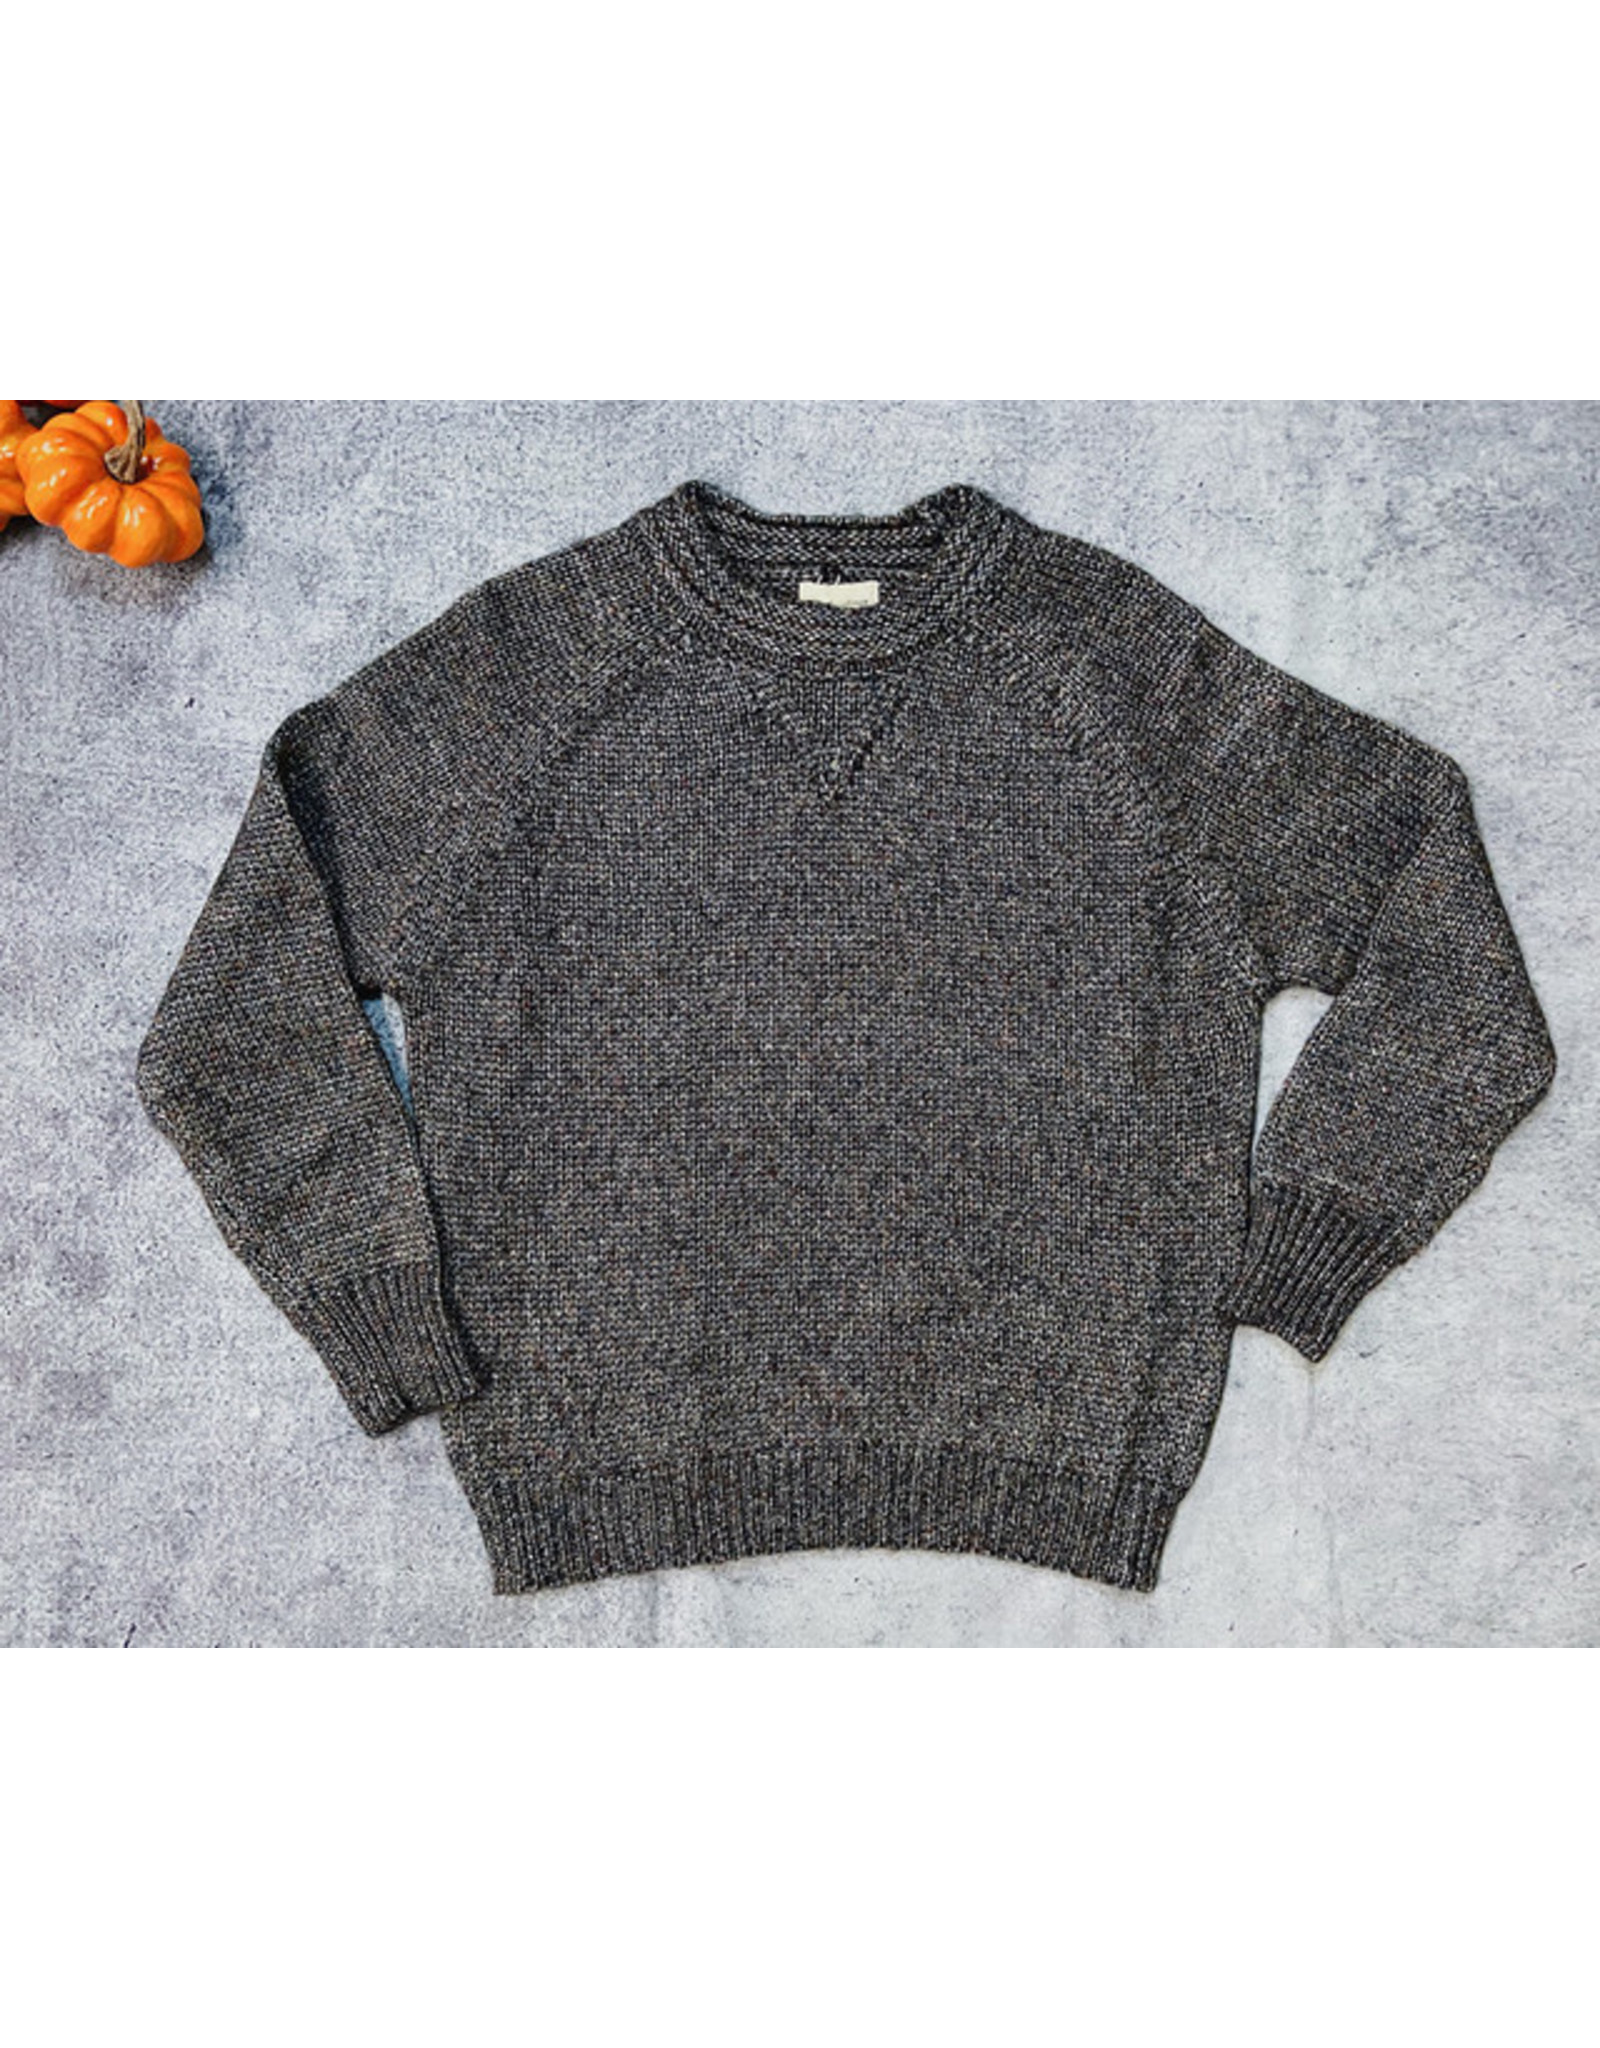 WAHEED SWEATER